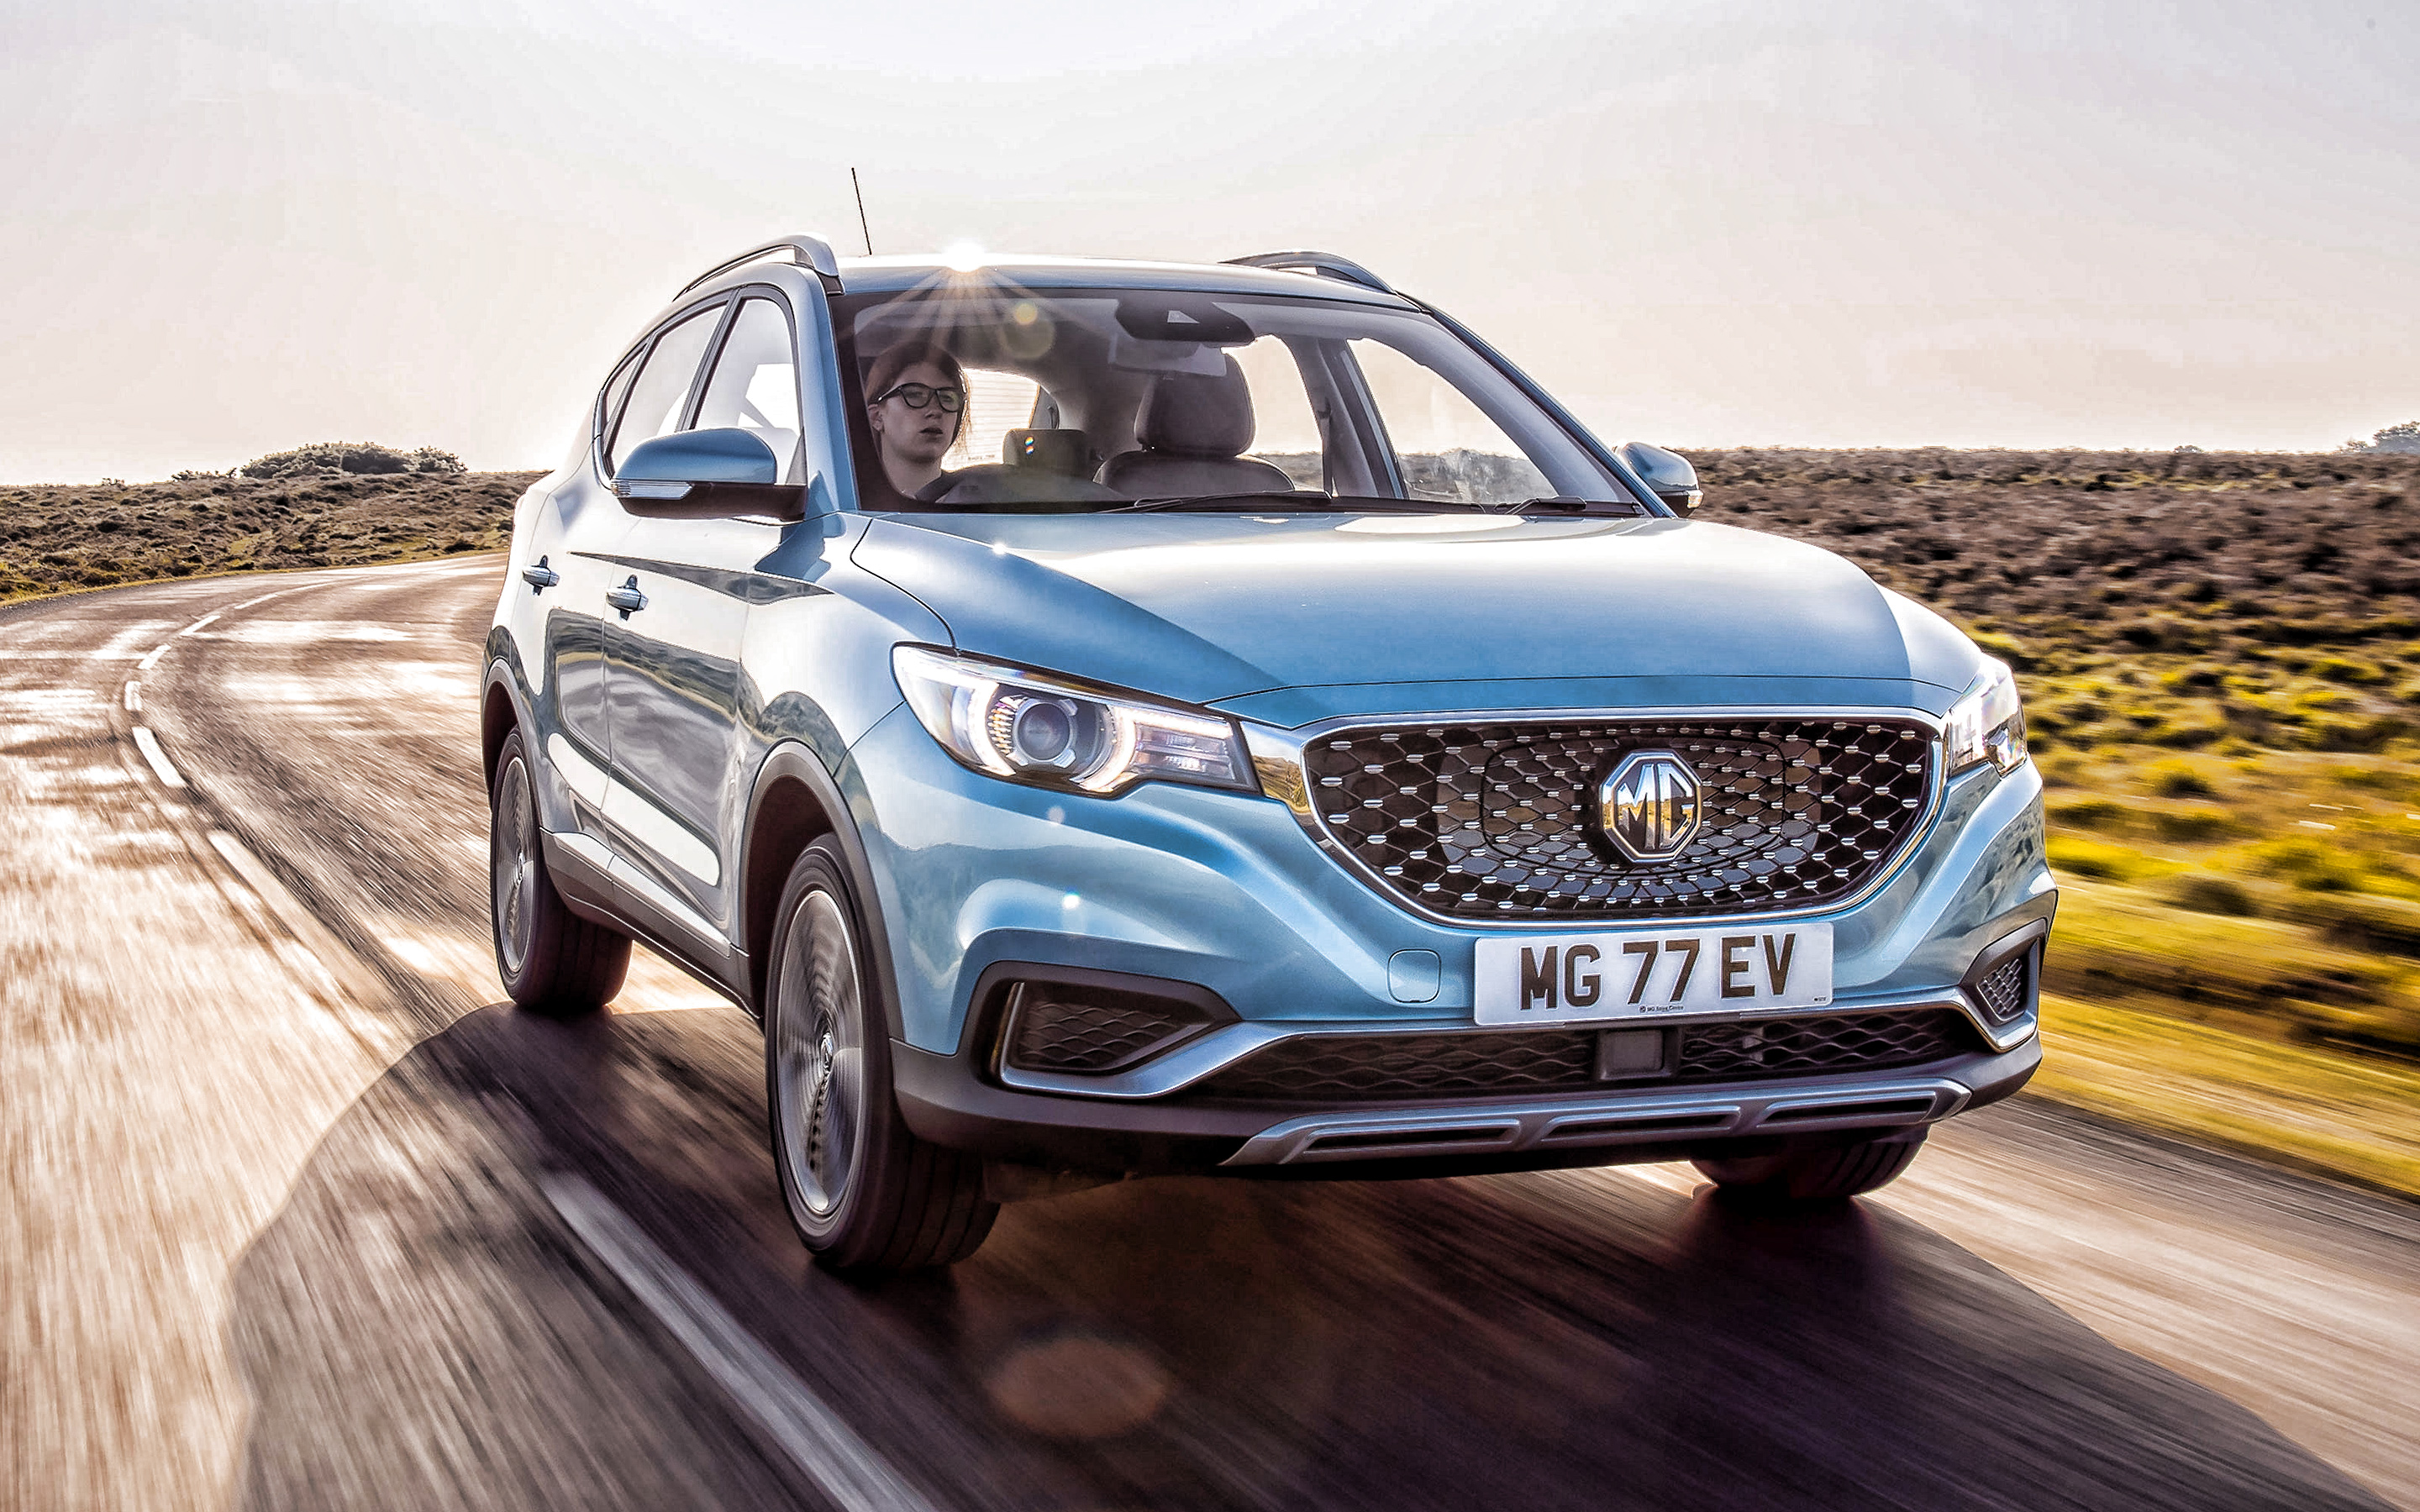 mg-zs-ev-2020-exterior-front-view-blue-crossover